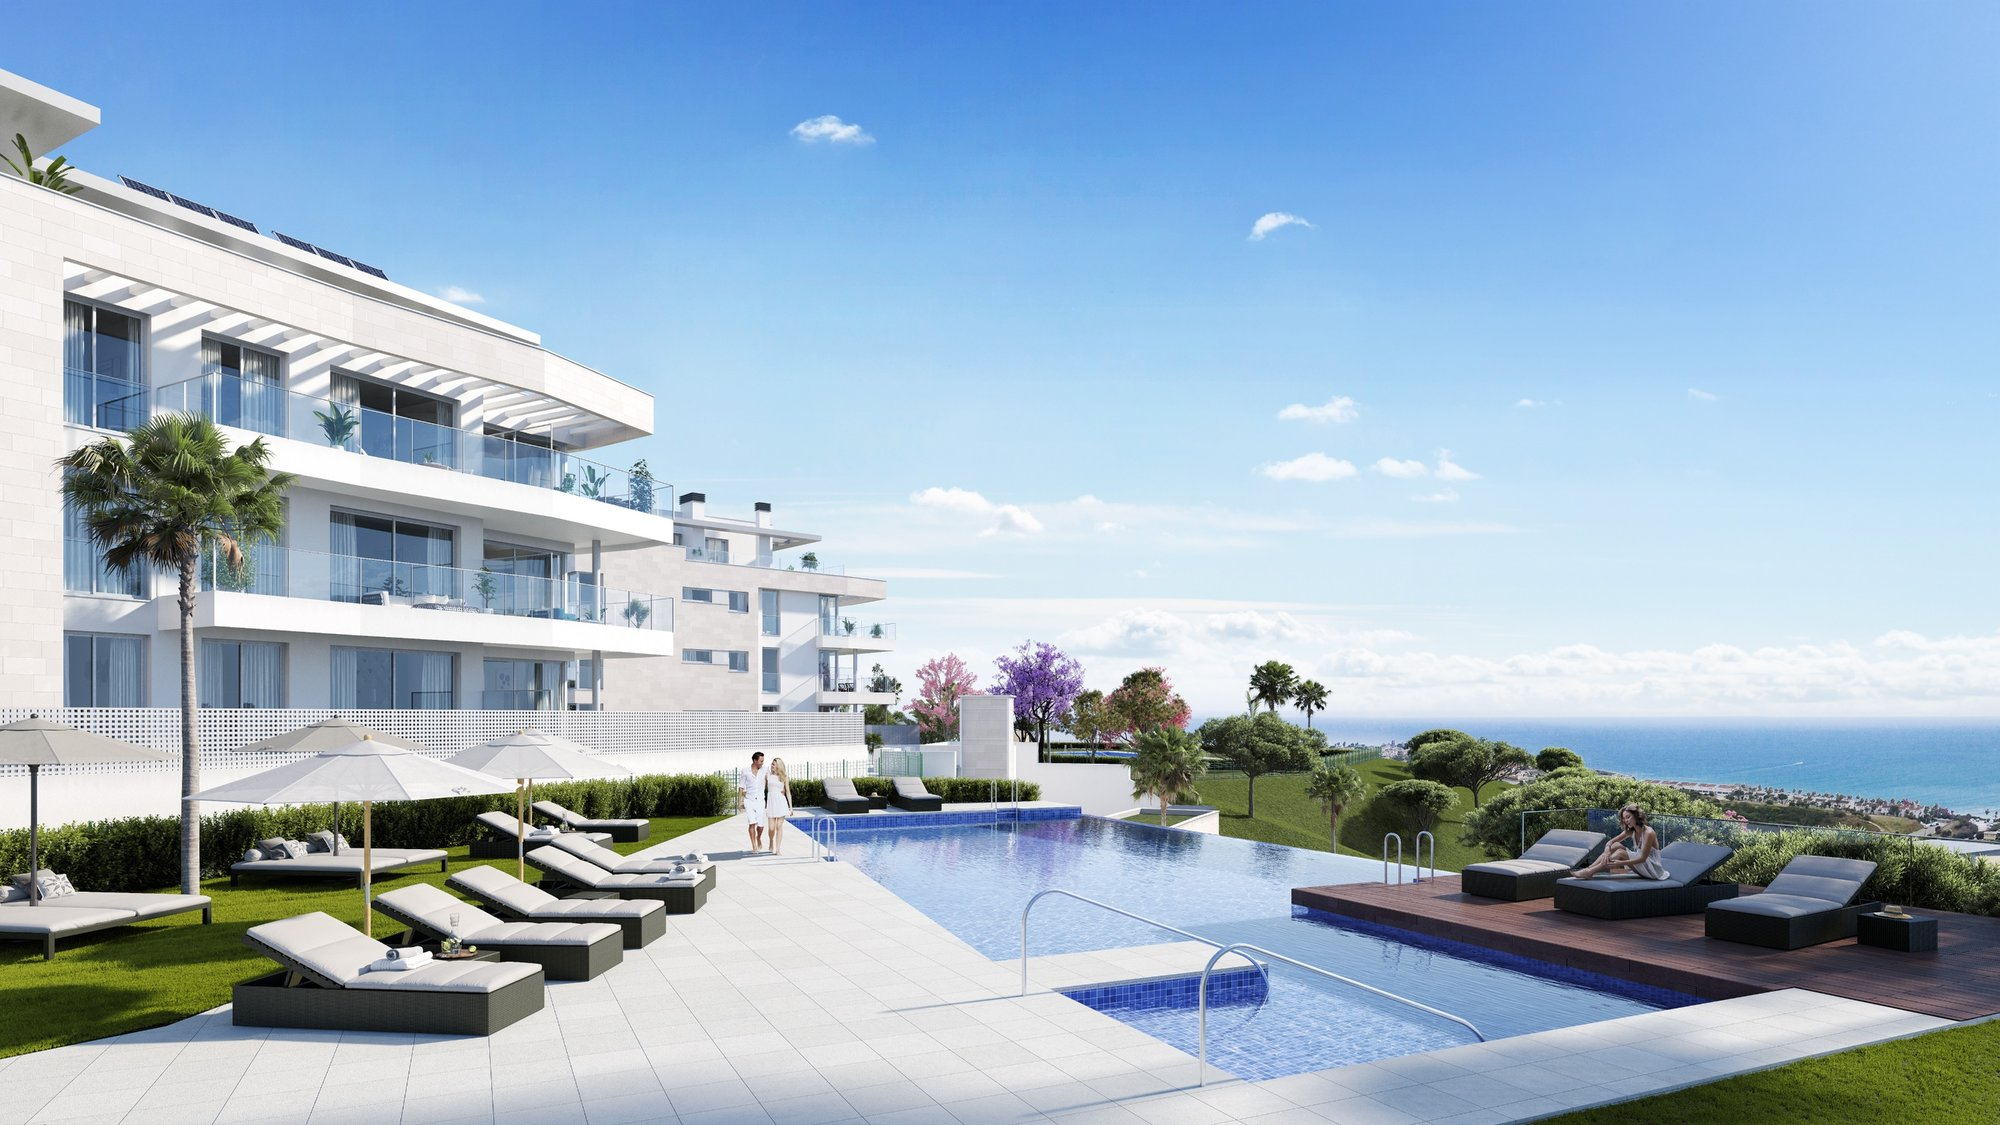 aaa3 bedroom Apartment in La Cala de Mijas, Mijas | M325328